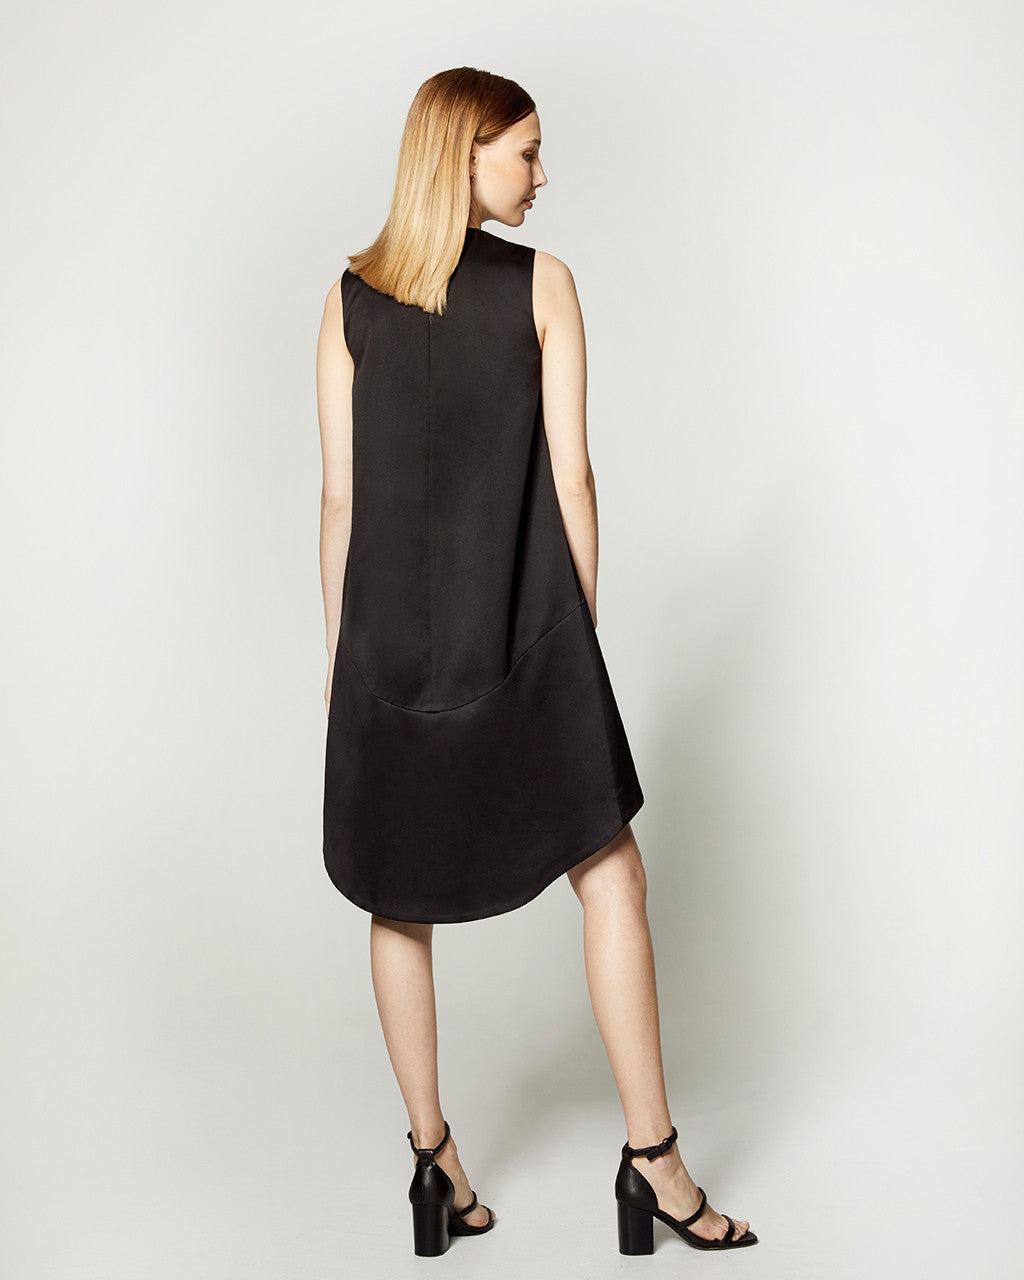 CIRCLE CUT DRESS - BLACK